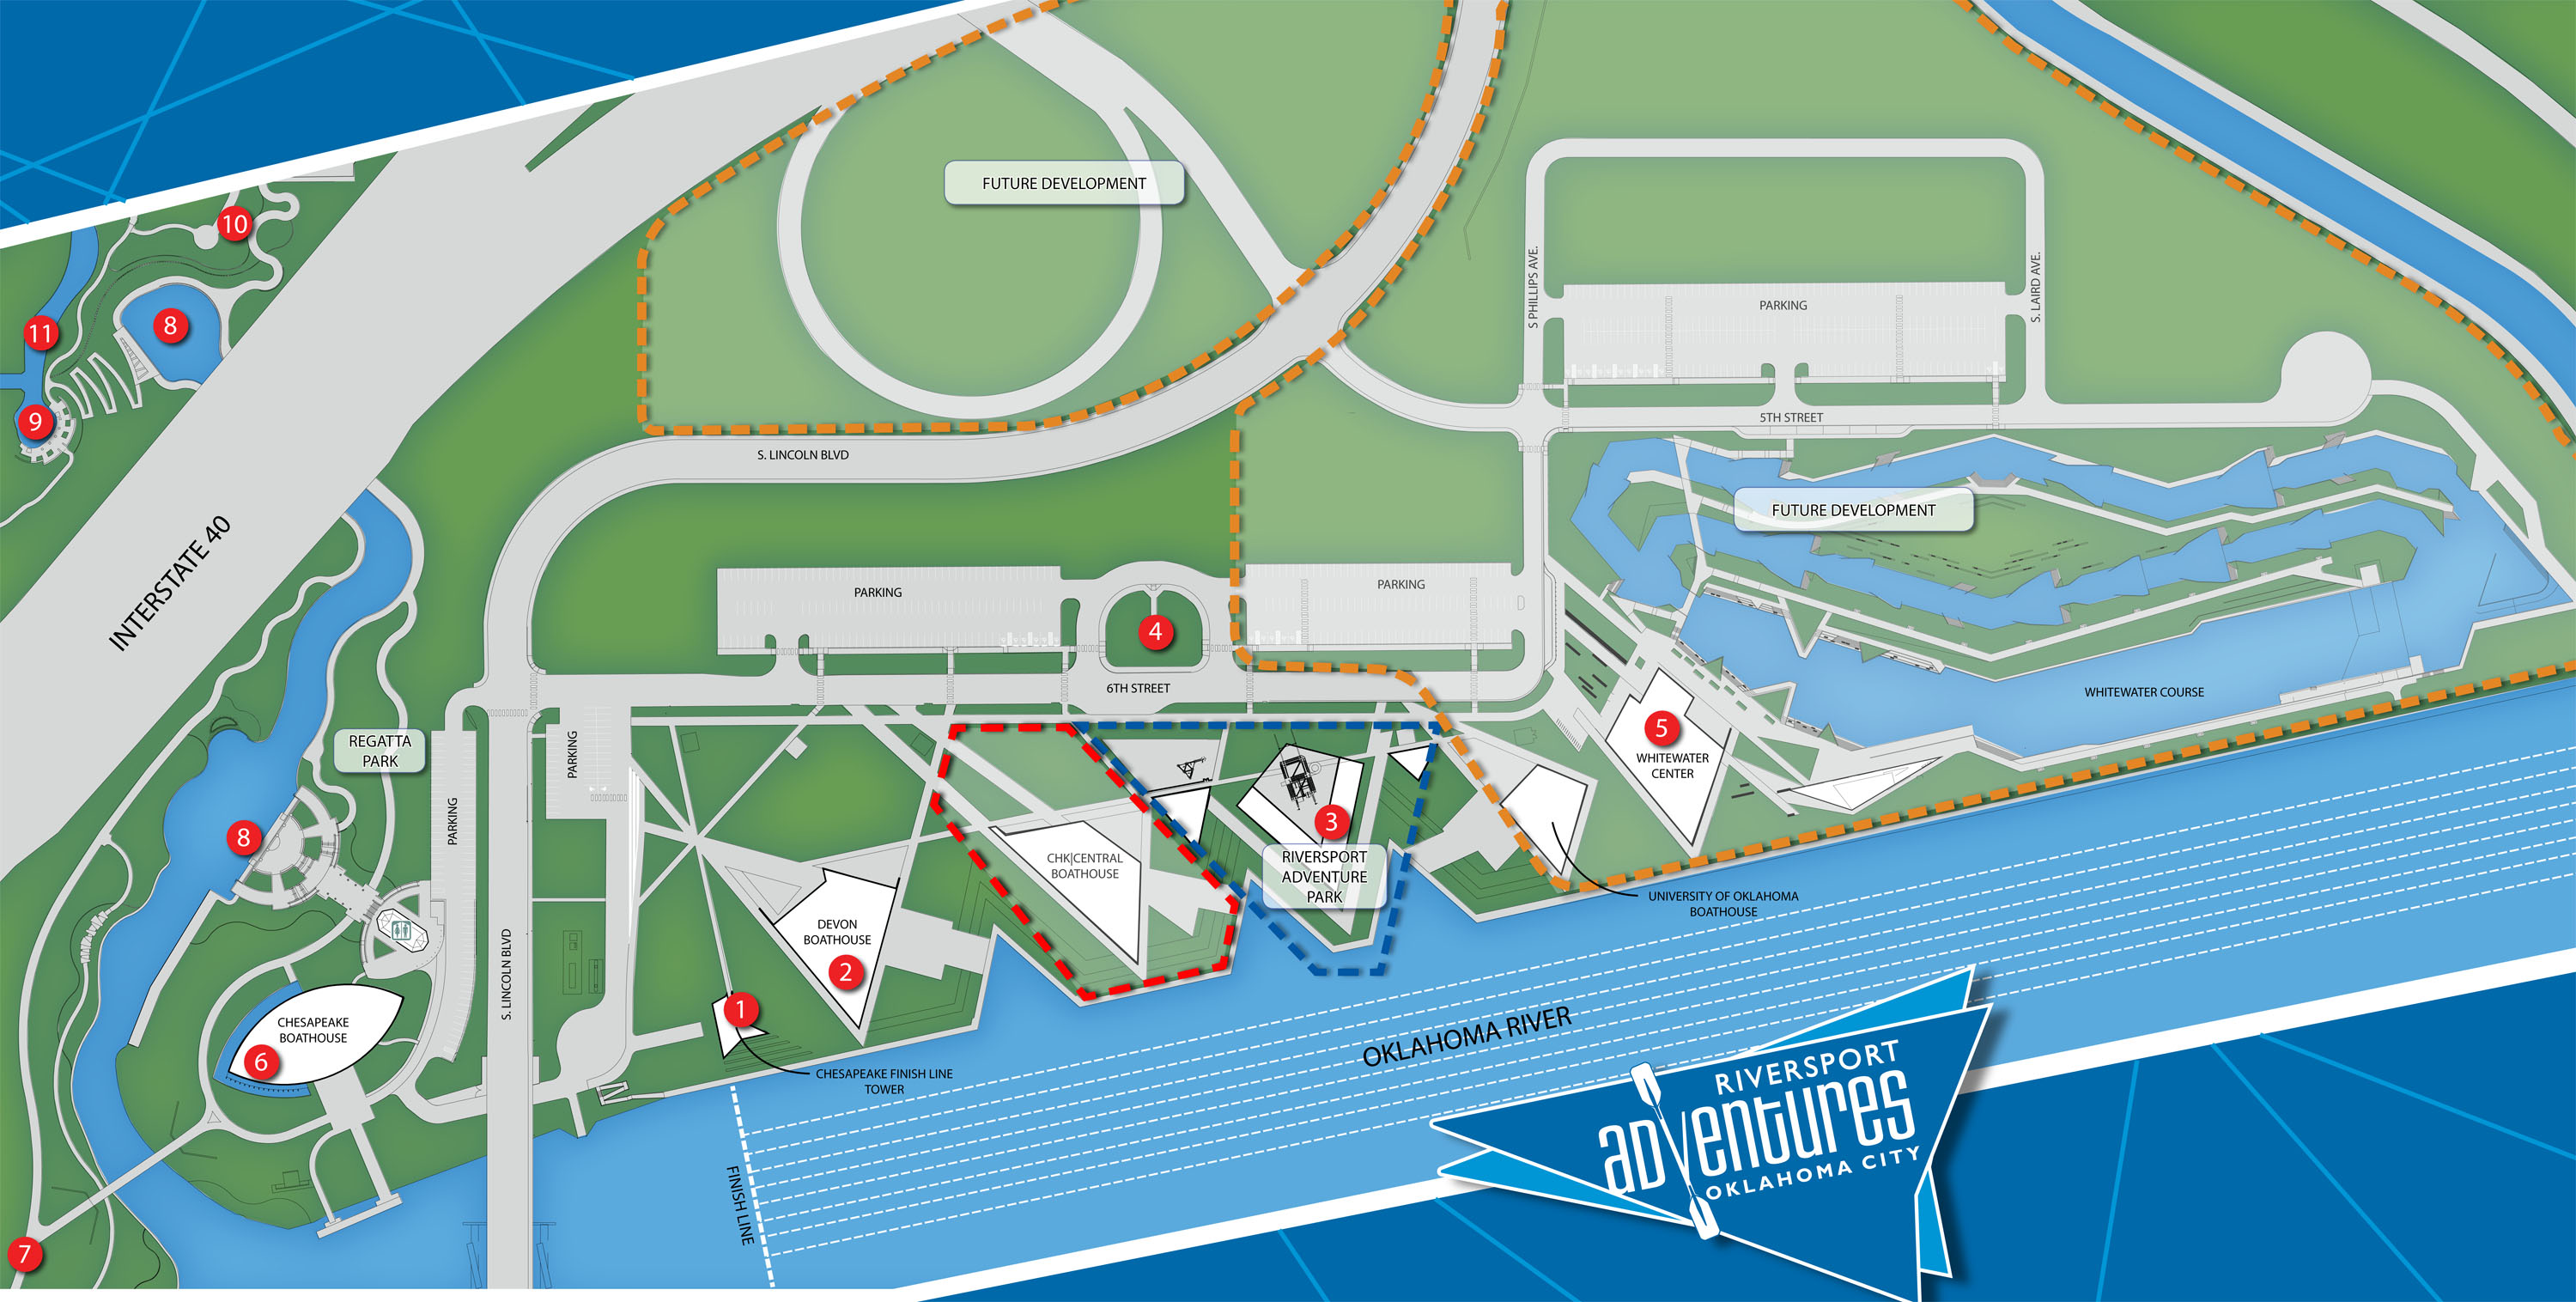 Boatouse District Key Map